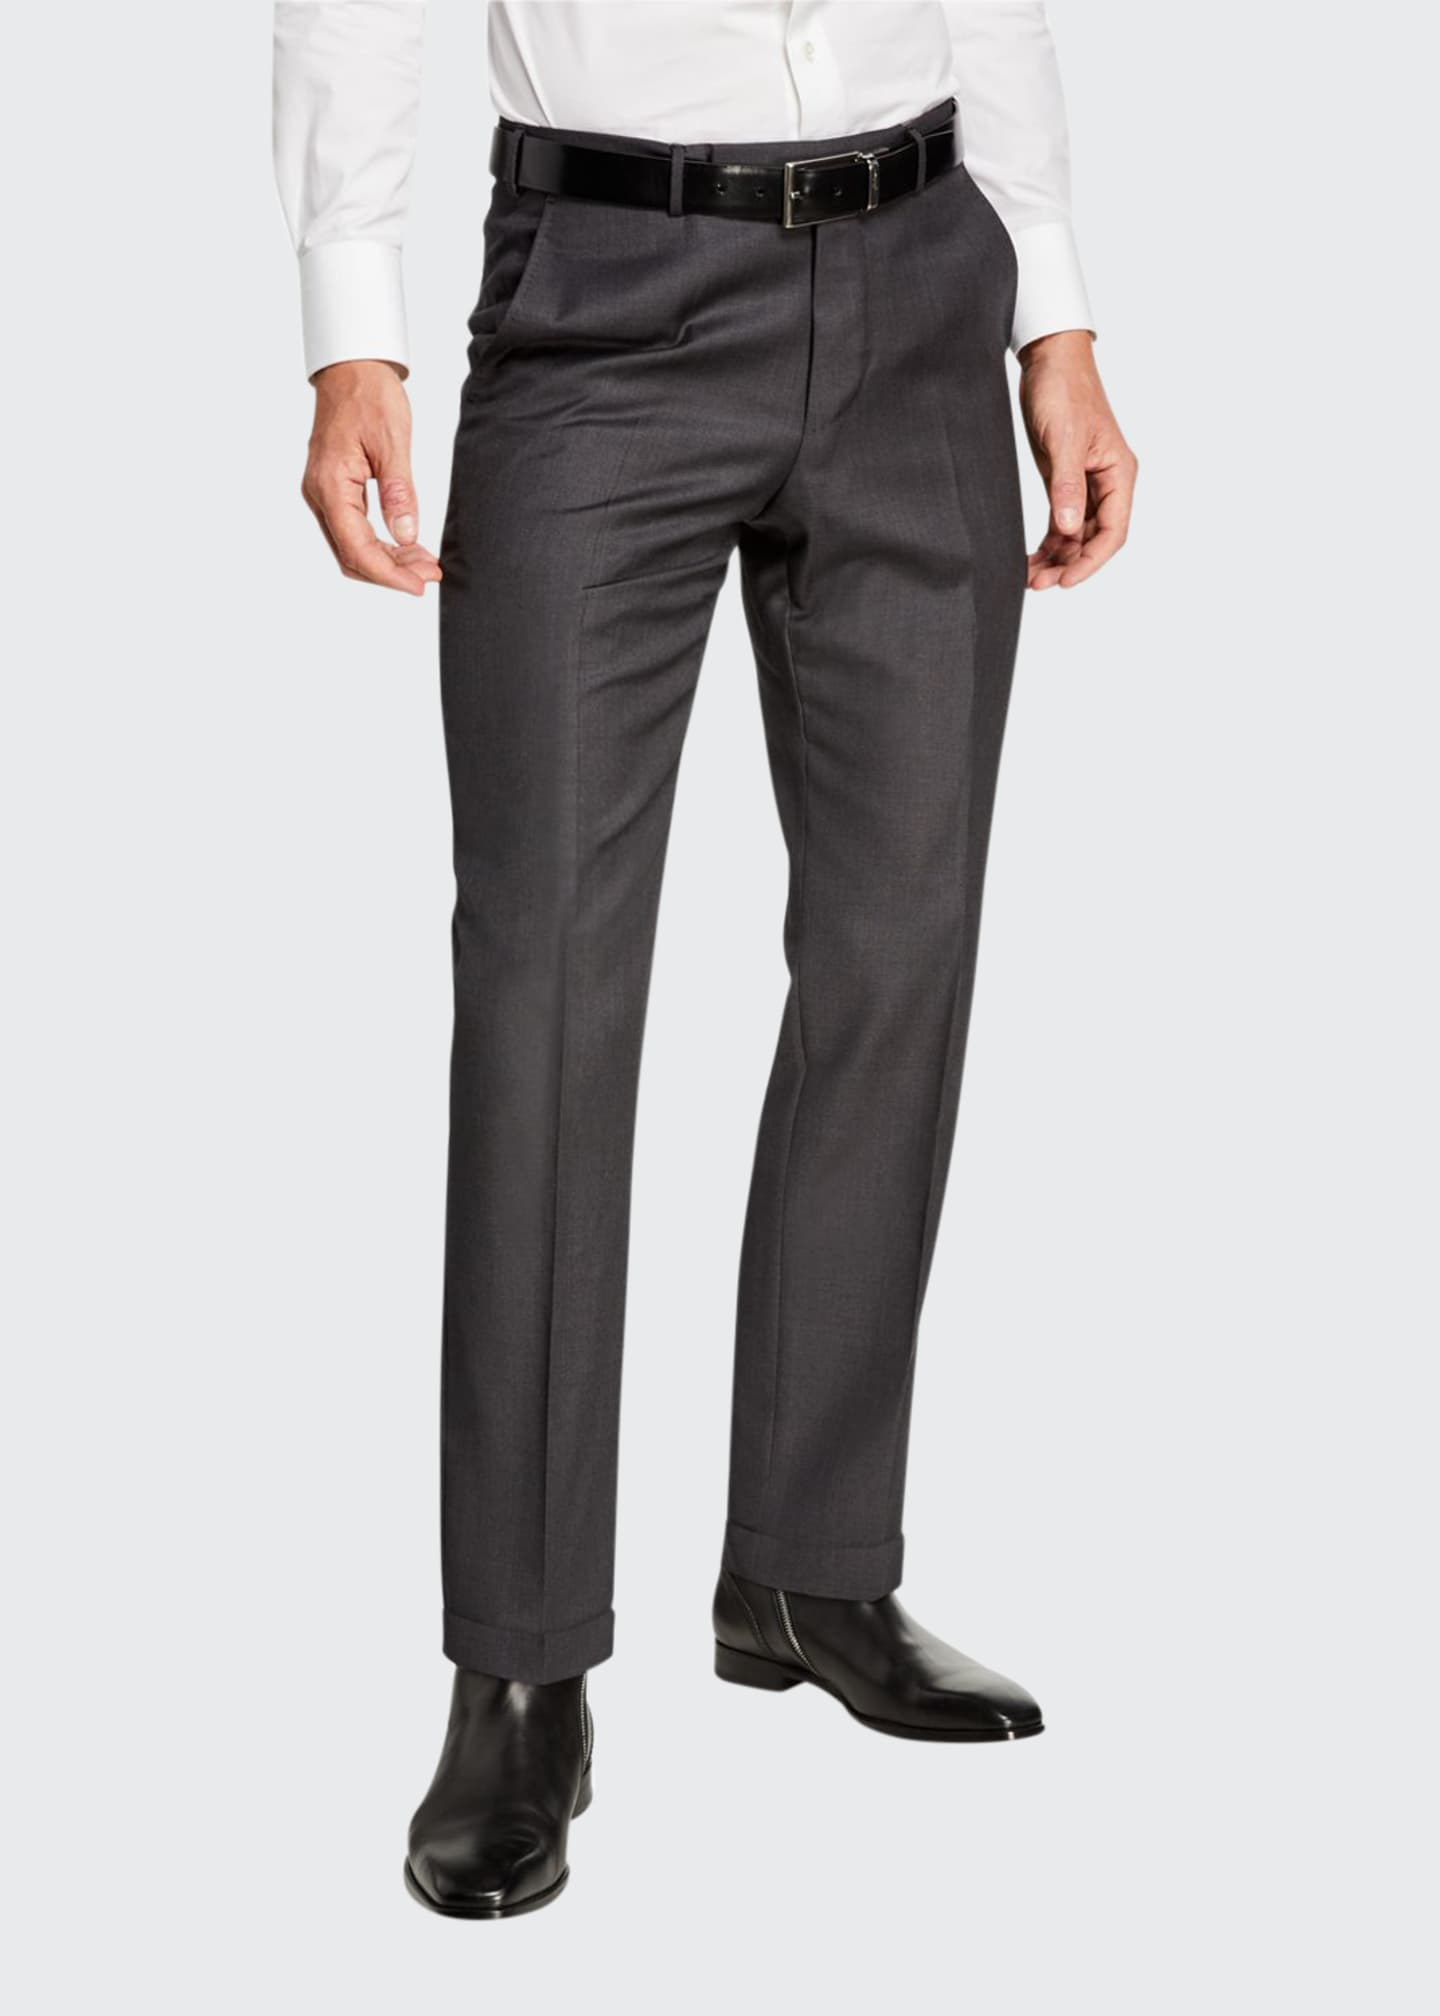 Ermenegildo Zegna Men's Achillfarm Wool/Silk Twill Trousers